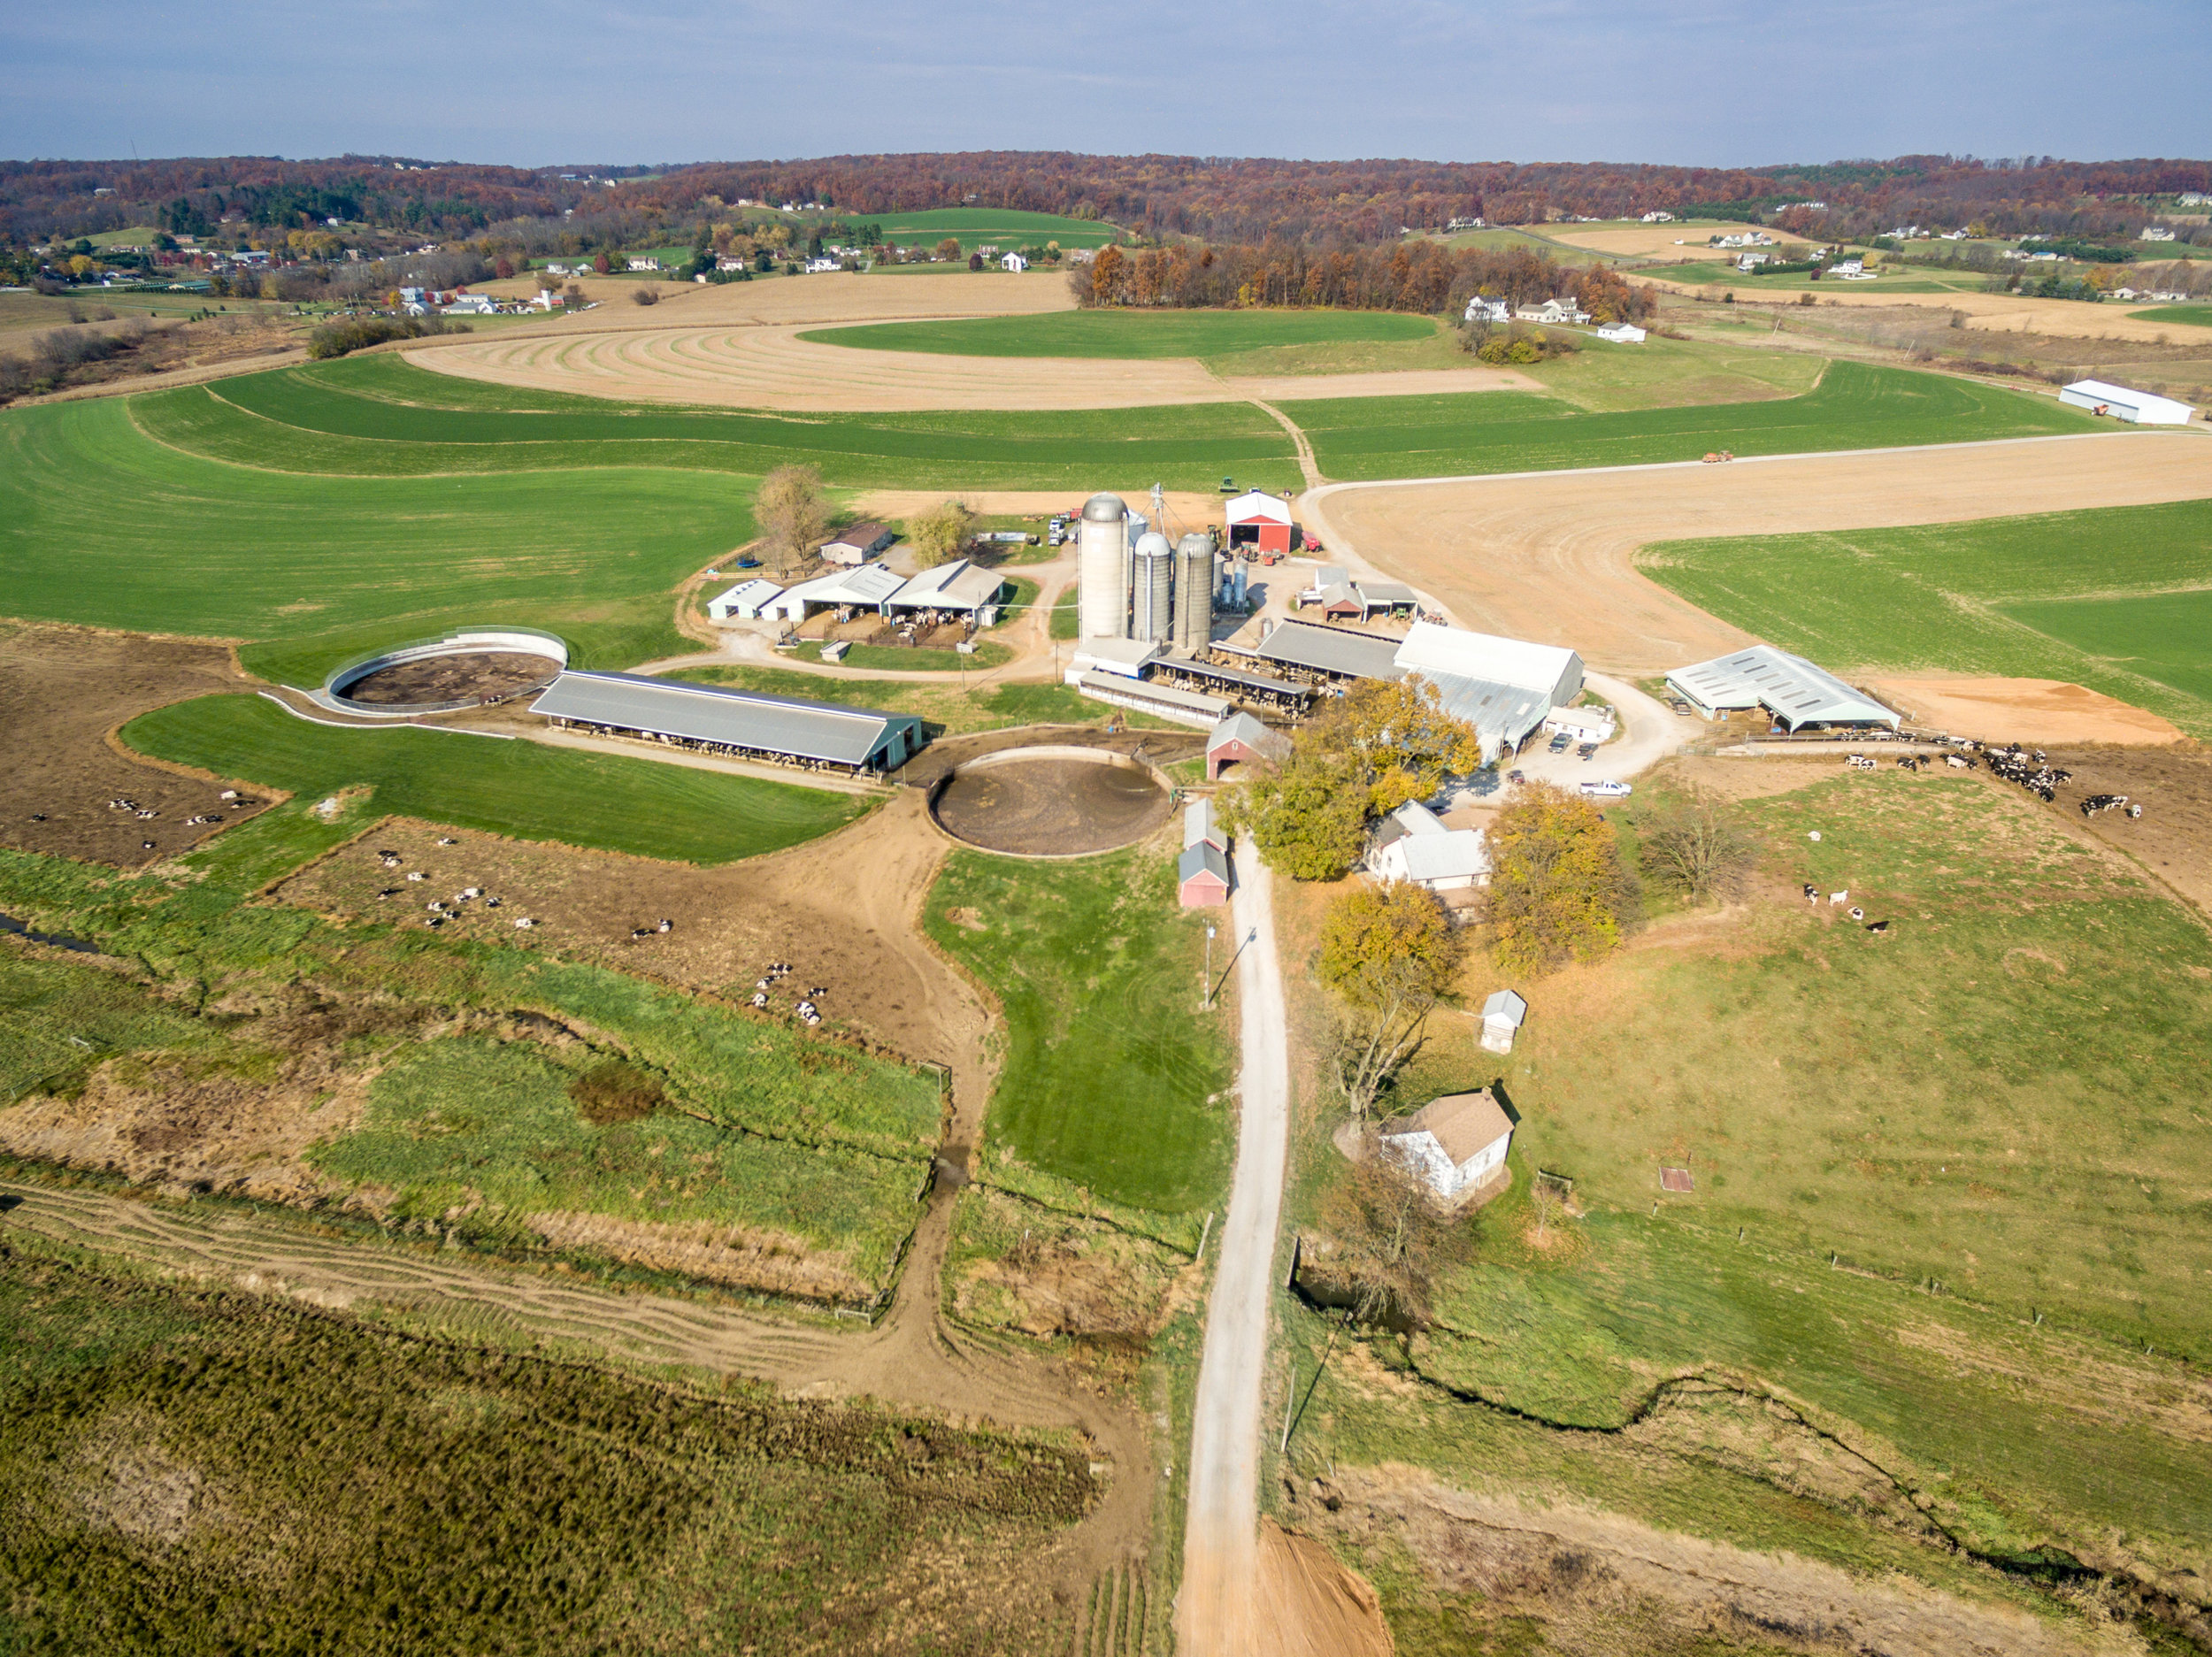 Aerial image of Maryland dairy that shows lagoons, barns, pastures, and other buildings.  Image by Edwin Remsberg